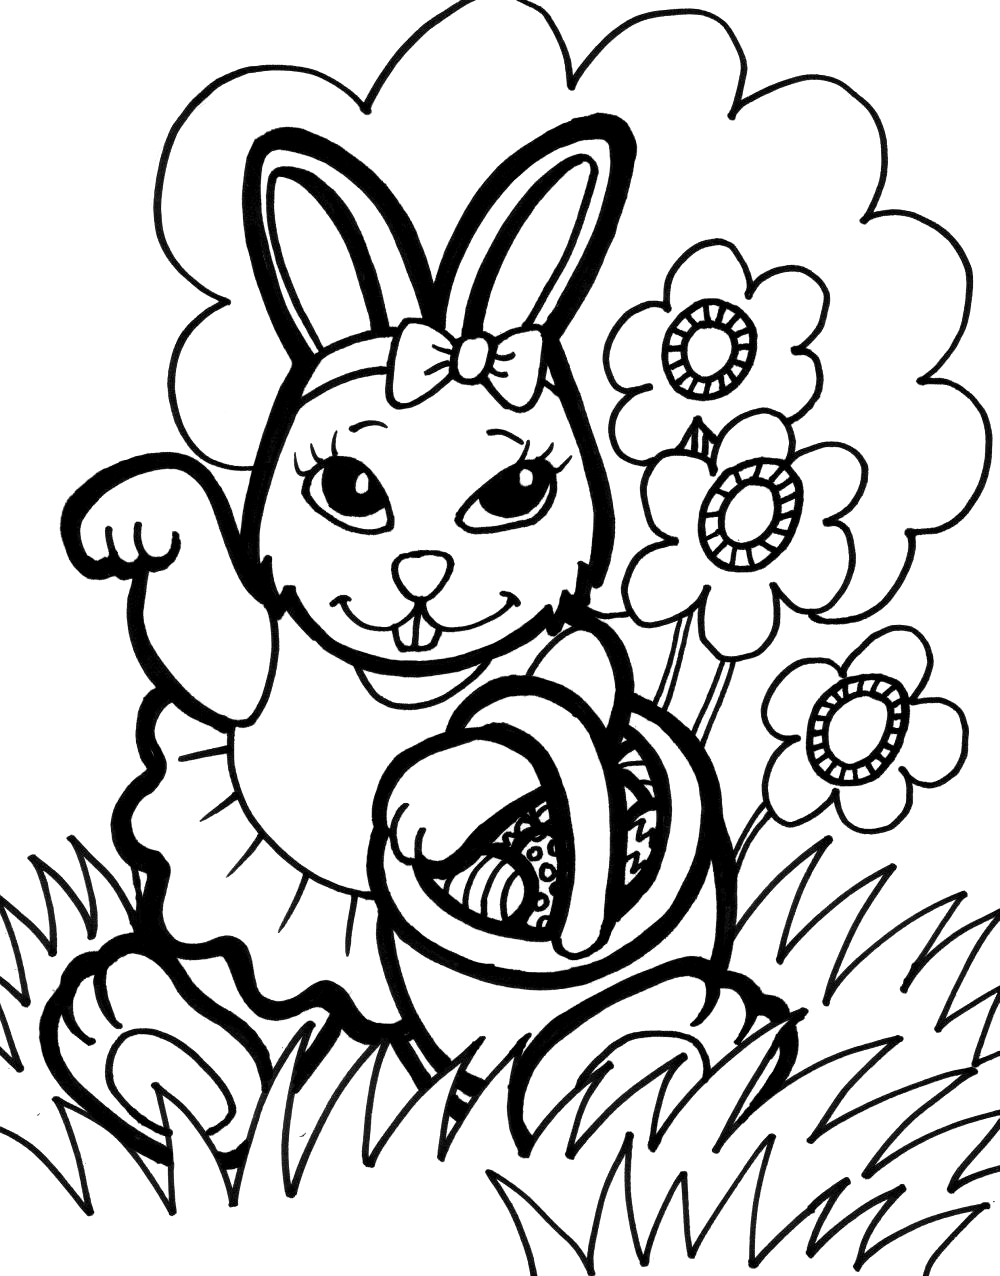 bunny pictures to print top 5 printable easter coloring pages for kids free pictures to print bunny